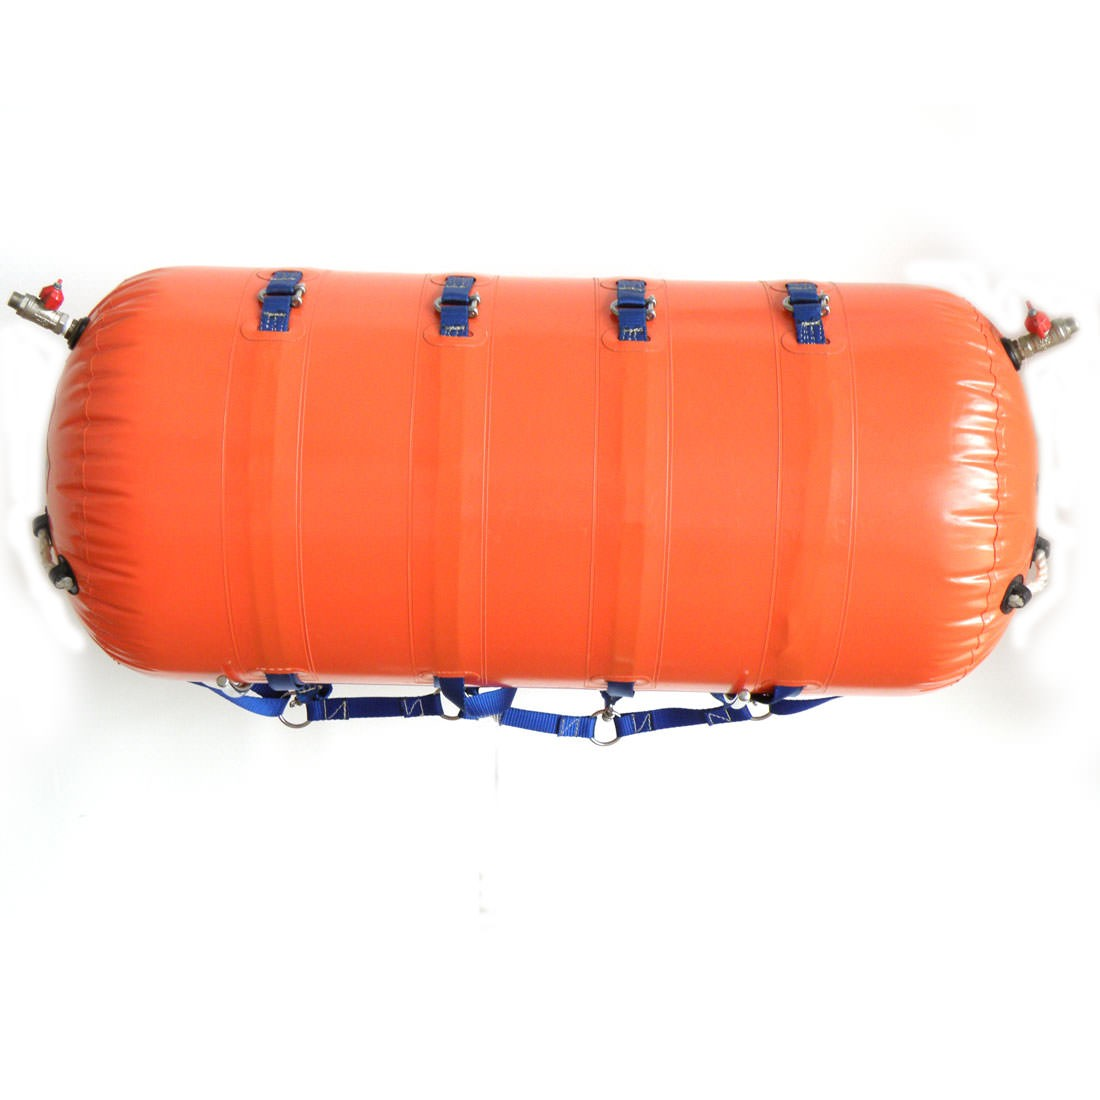 Seaflex Inflatable Buoyancy Unit 1,102 lbs 500 kg Lift Capacity SEF-500IBU-016